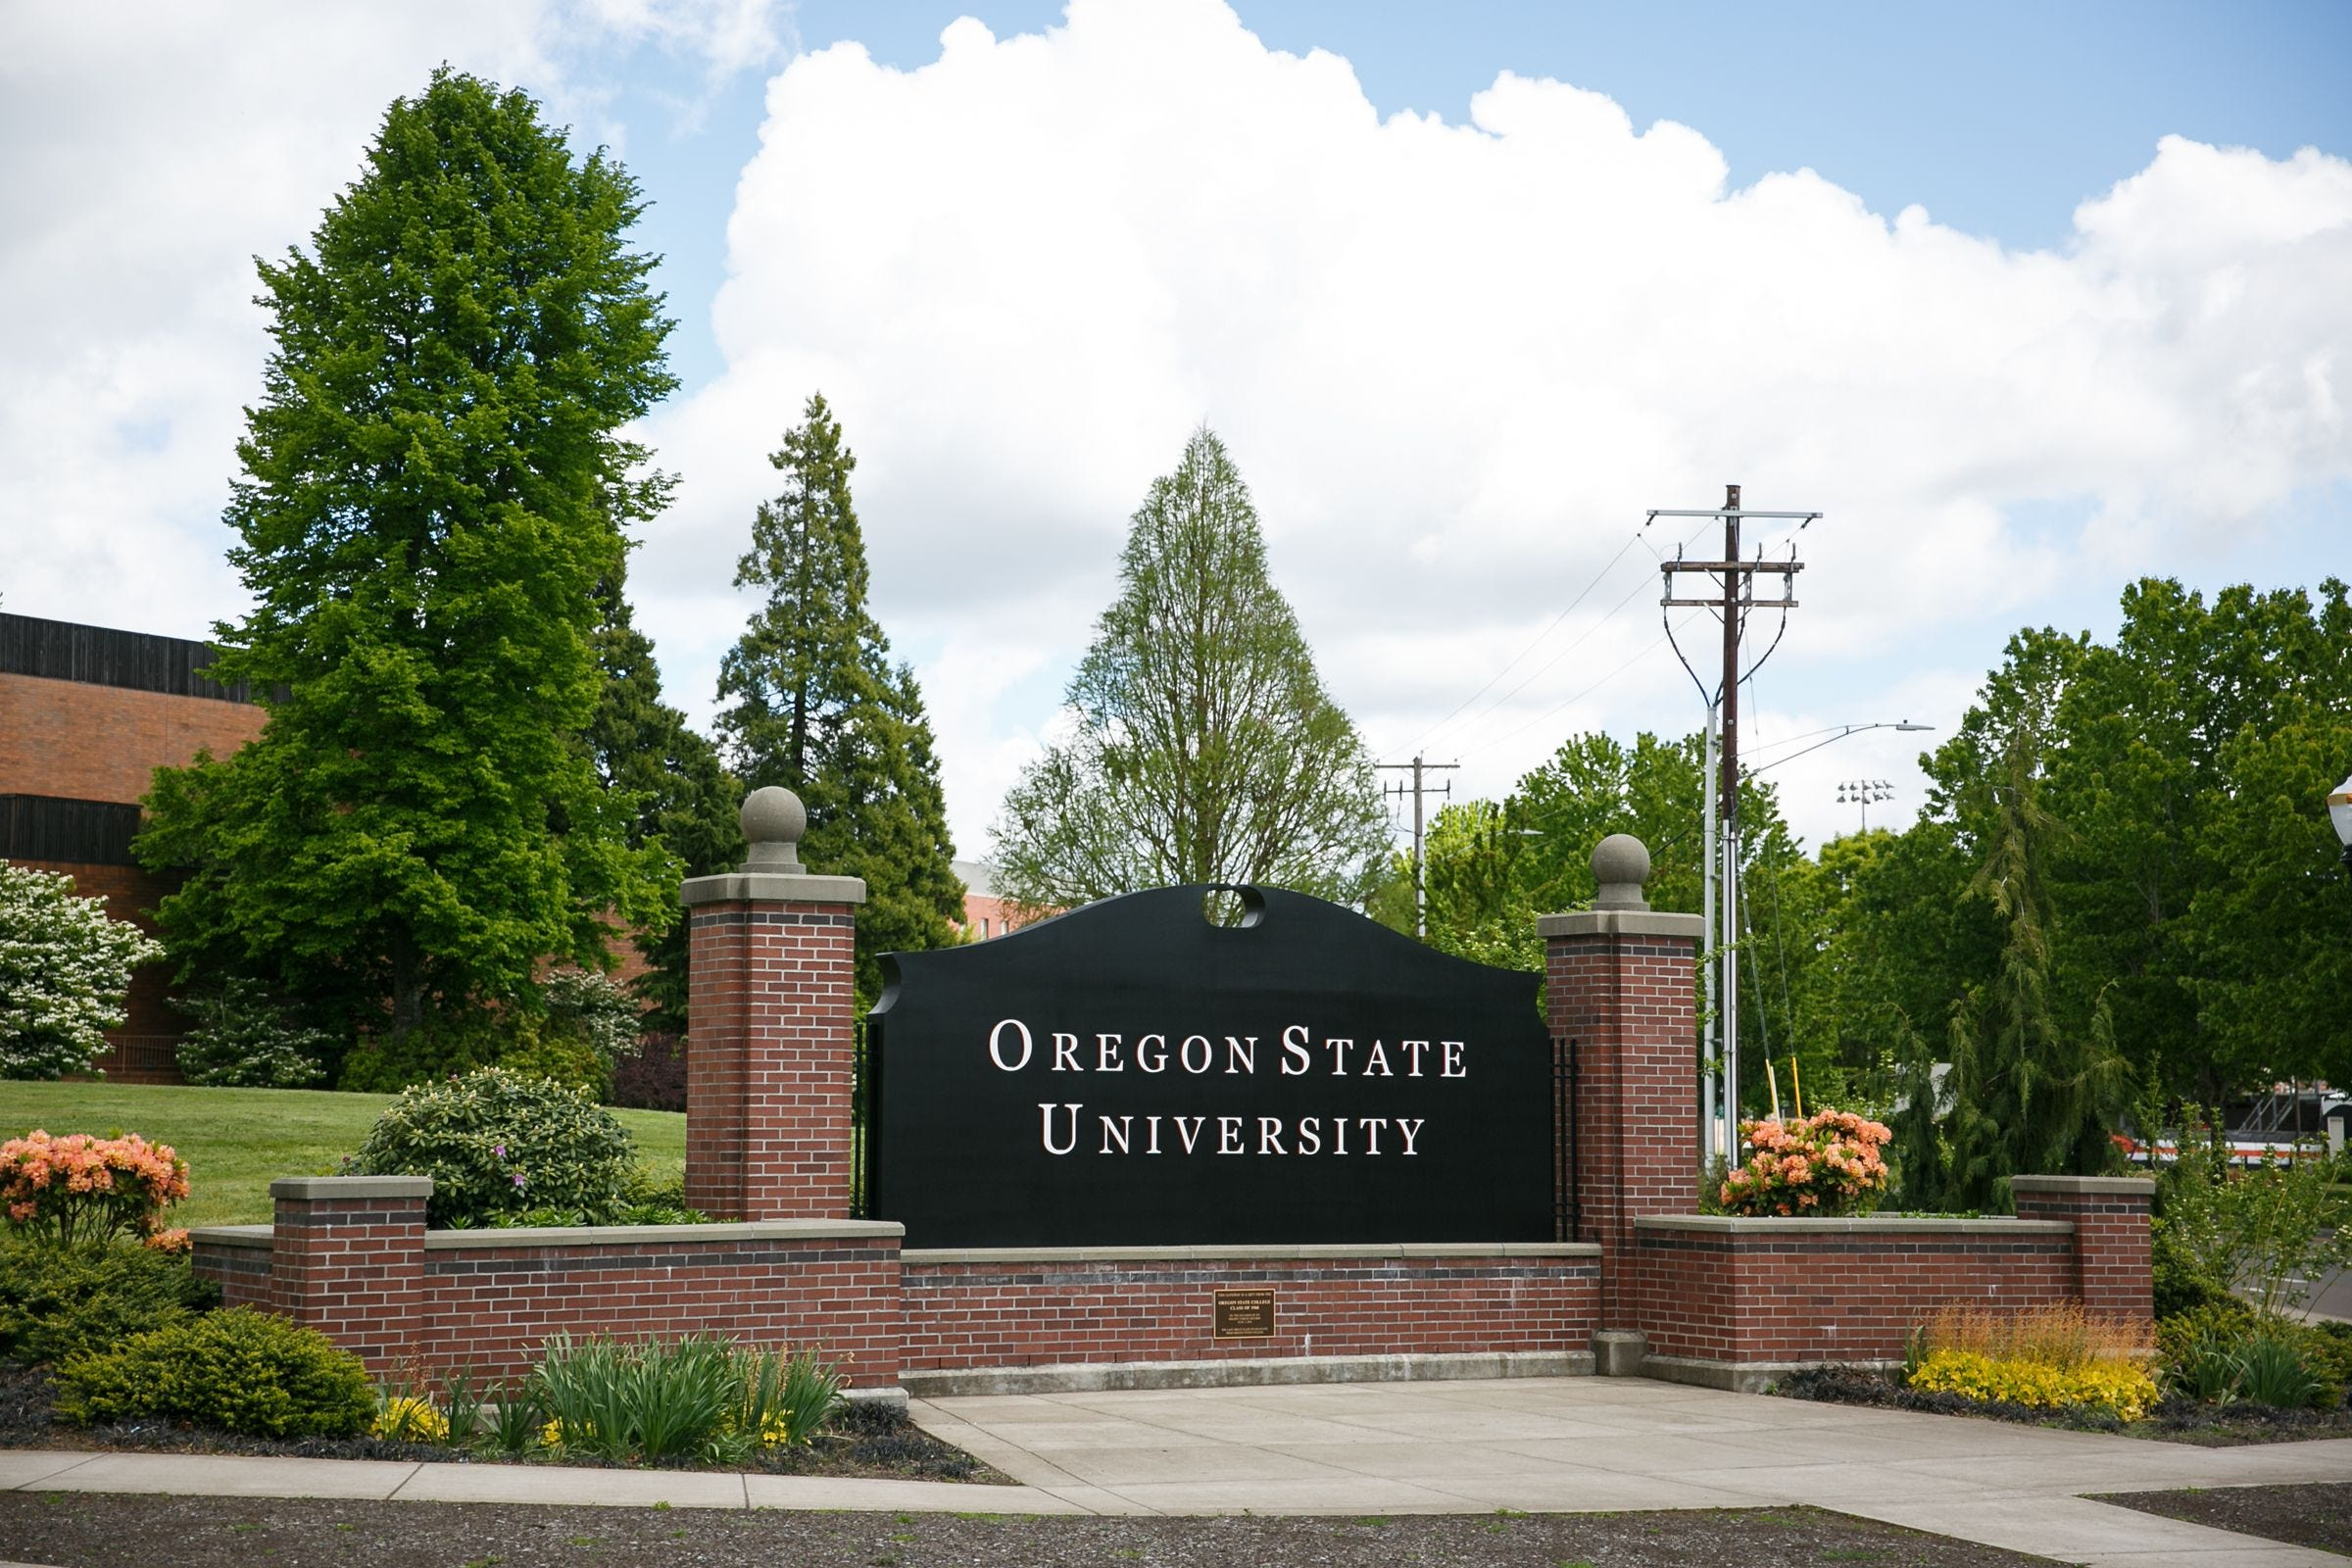 The Oregon State University campus in Corvallis.